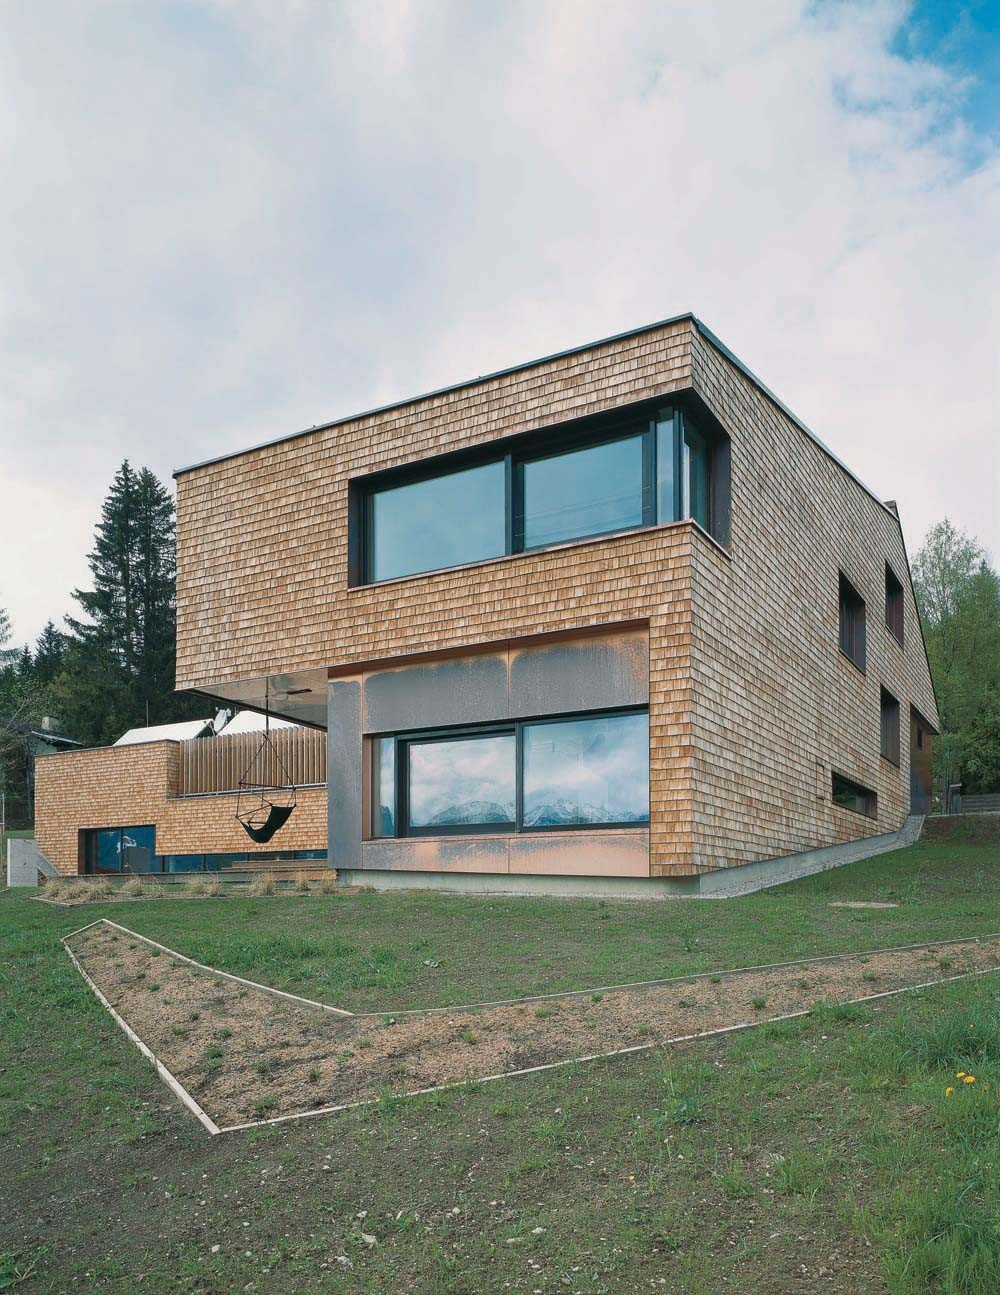 SB House / LP architektur, © Angelo Kaunat